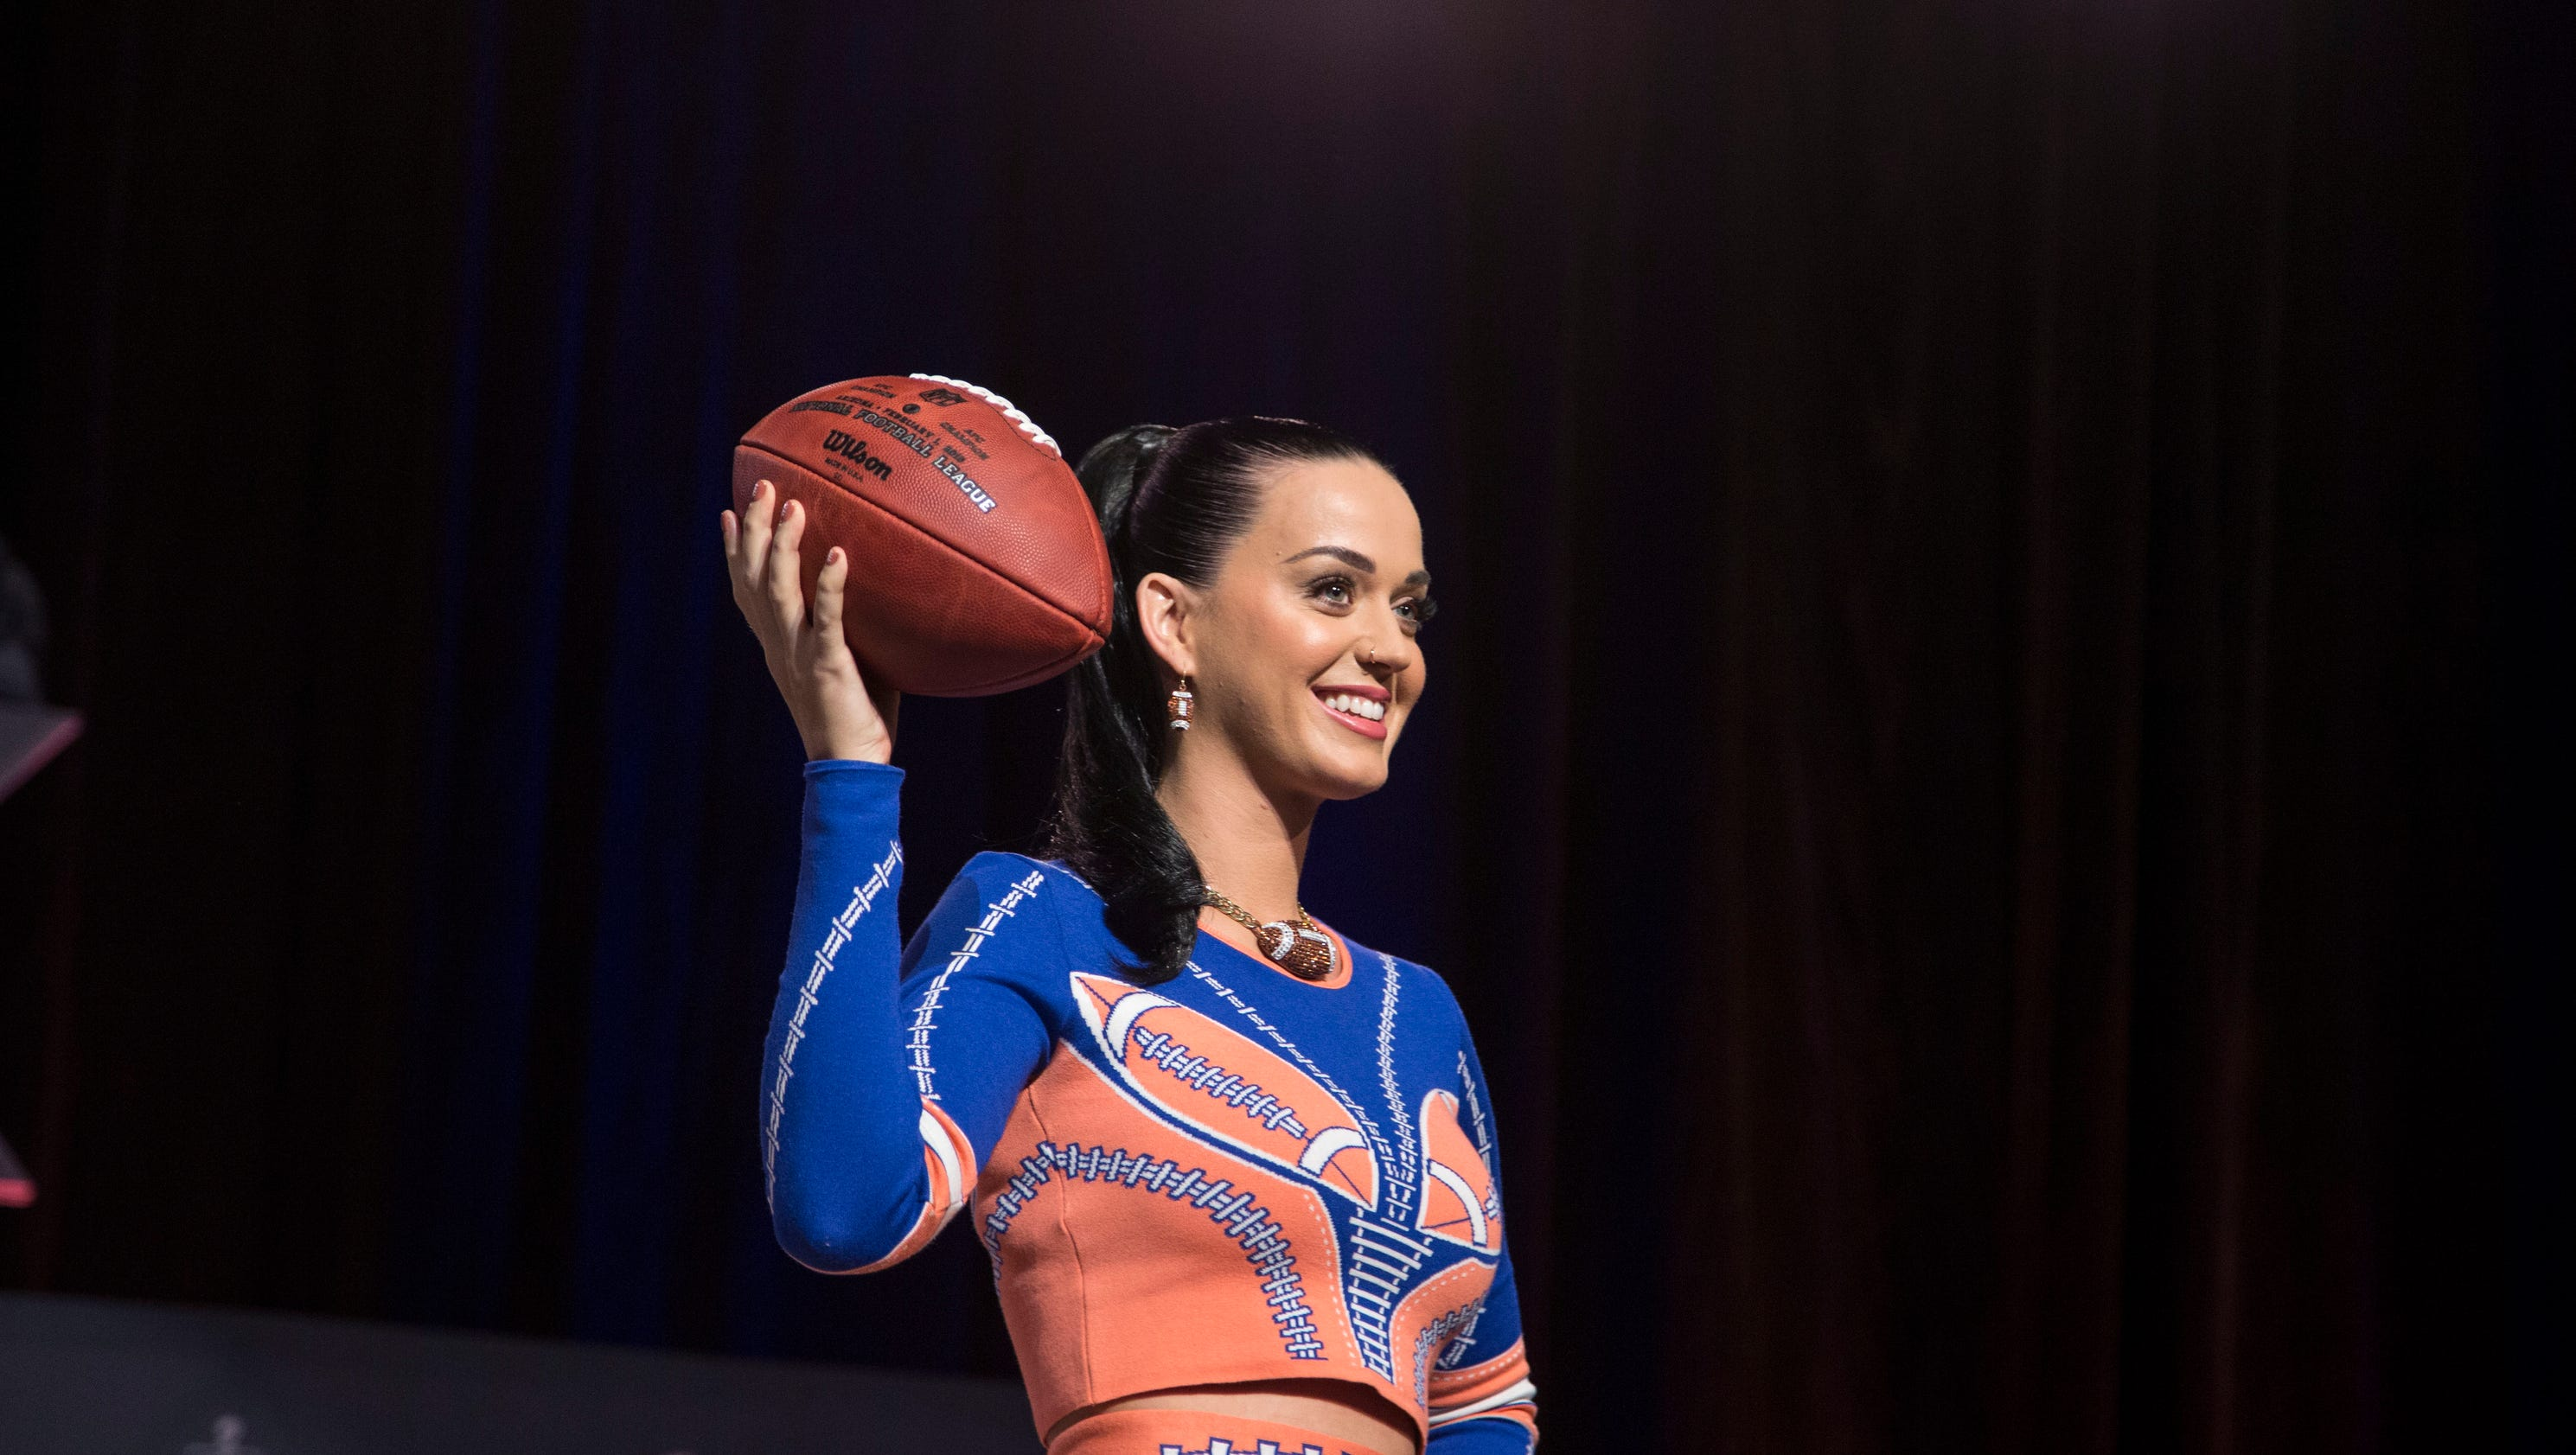 Katy Perry drops hints about Super Bowl halftime show